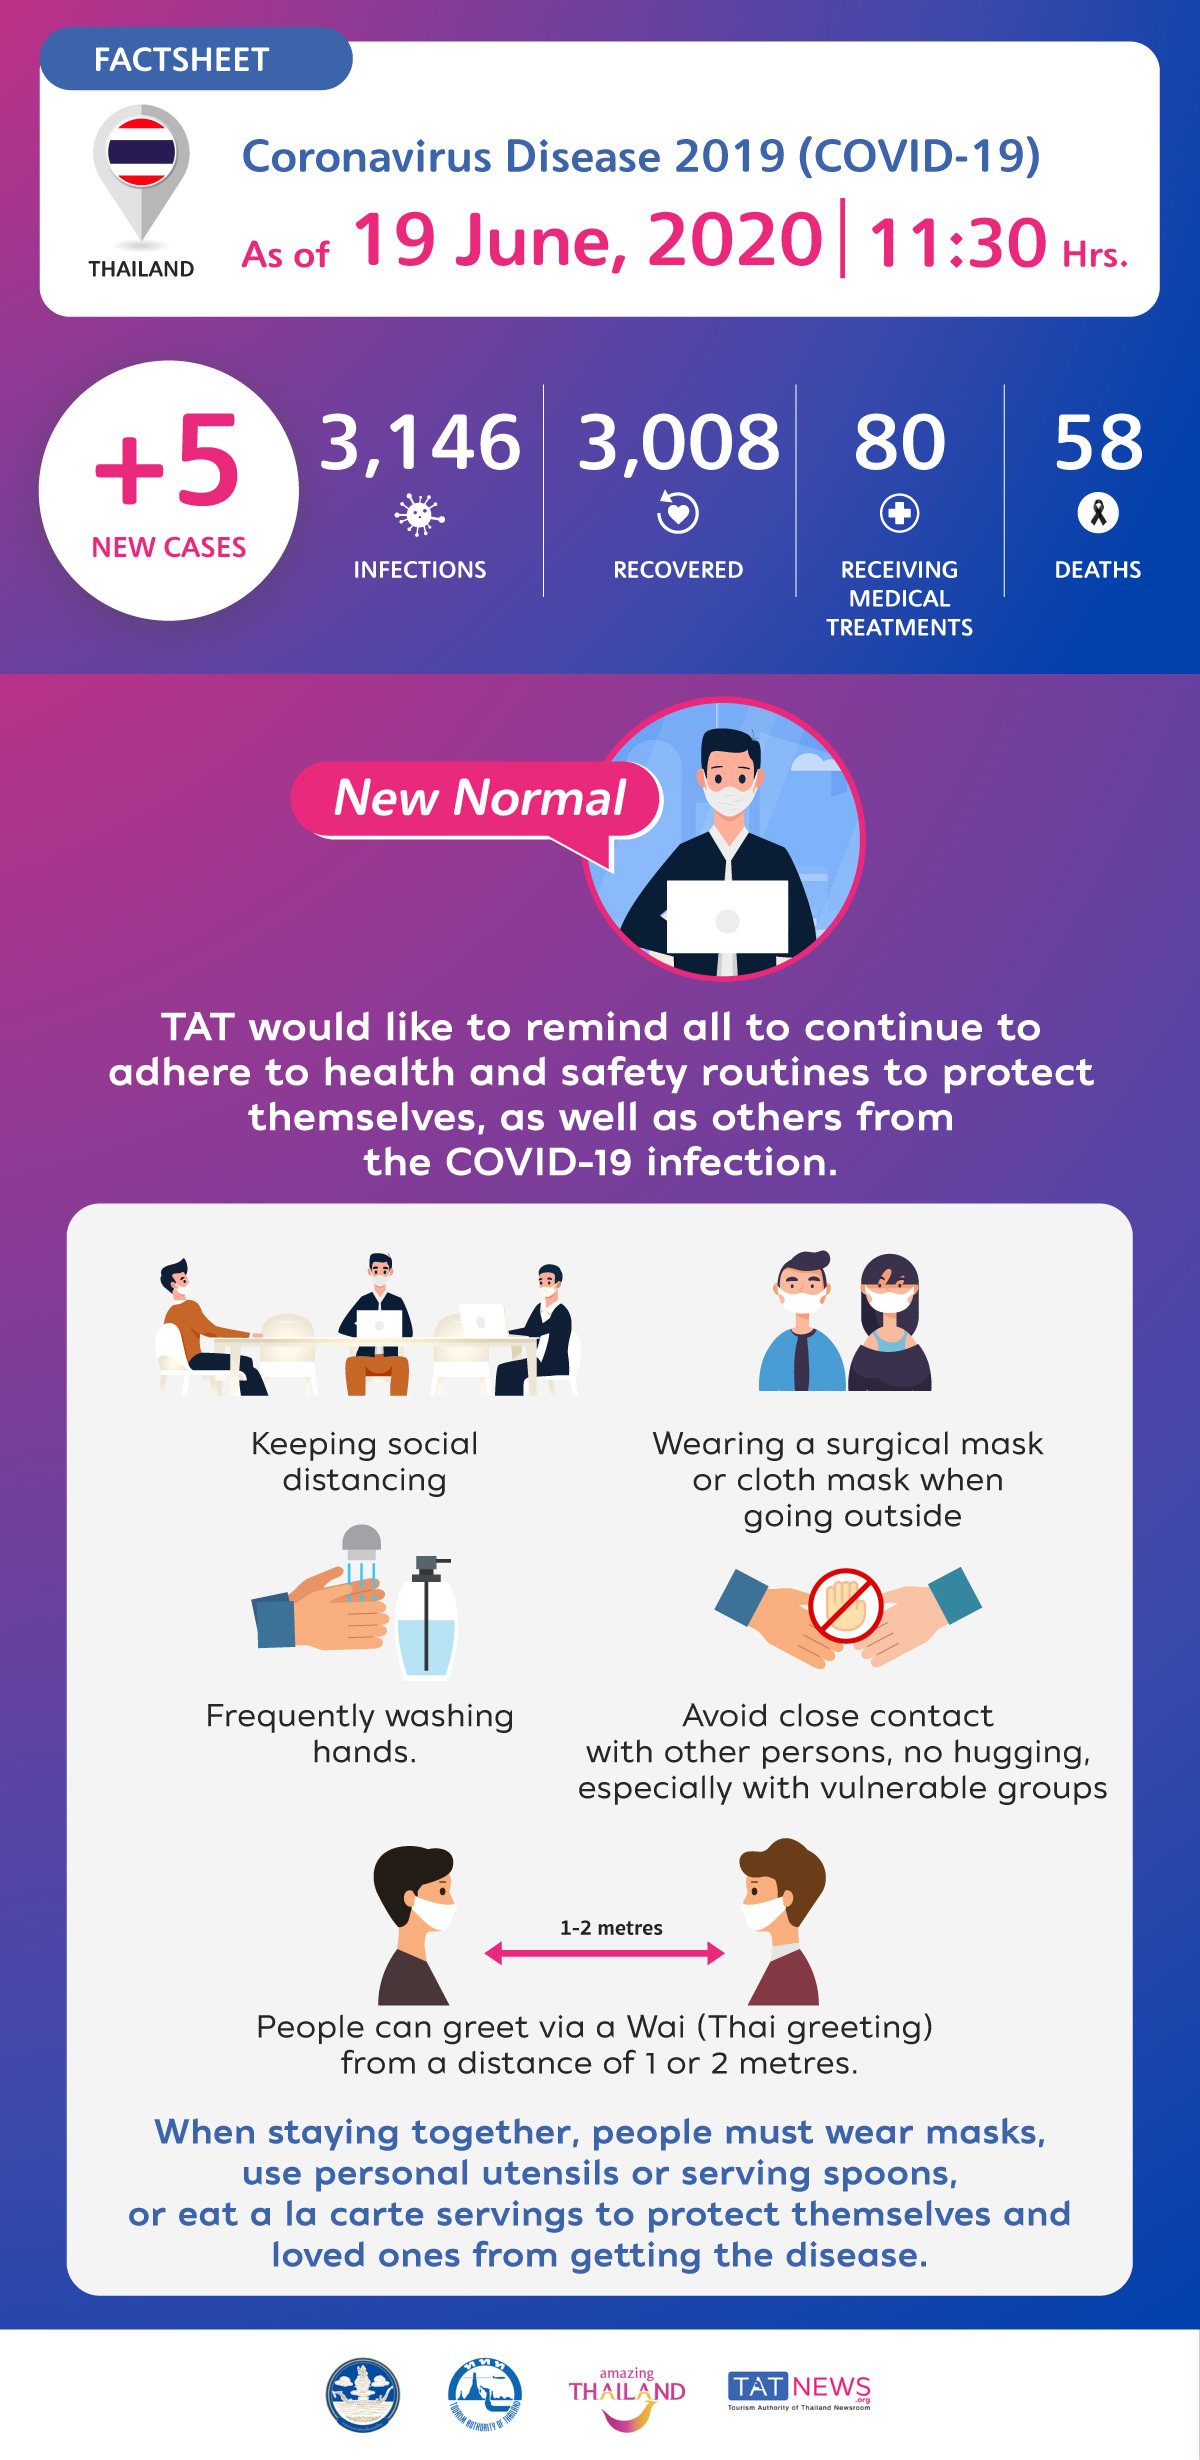 Coronavirus Disease 2019 (COVID-19) situation in Thailand as of 19 June 2020, 11.30 Hrs.